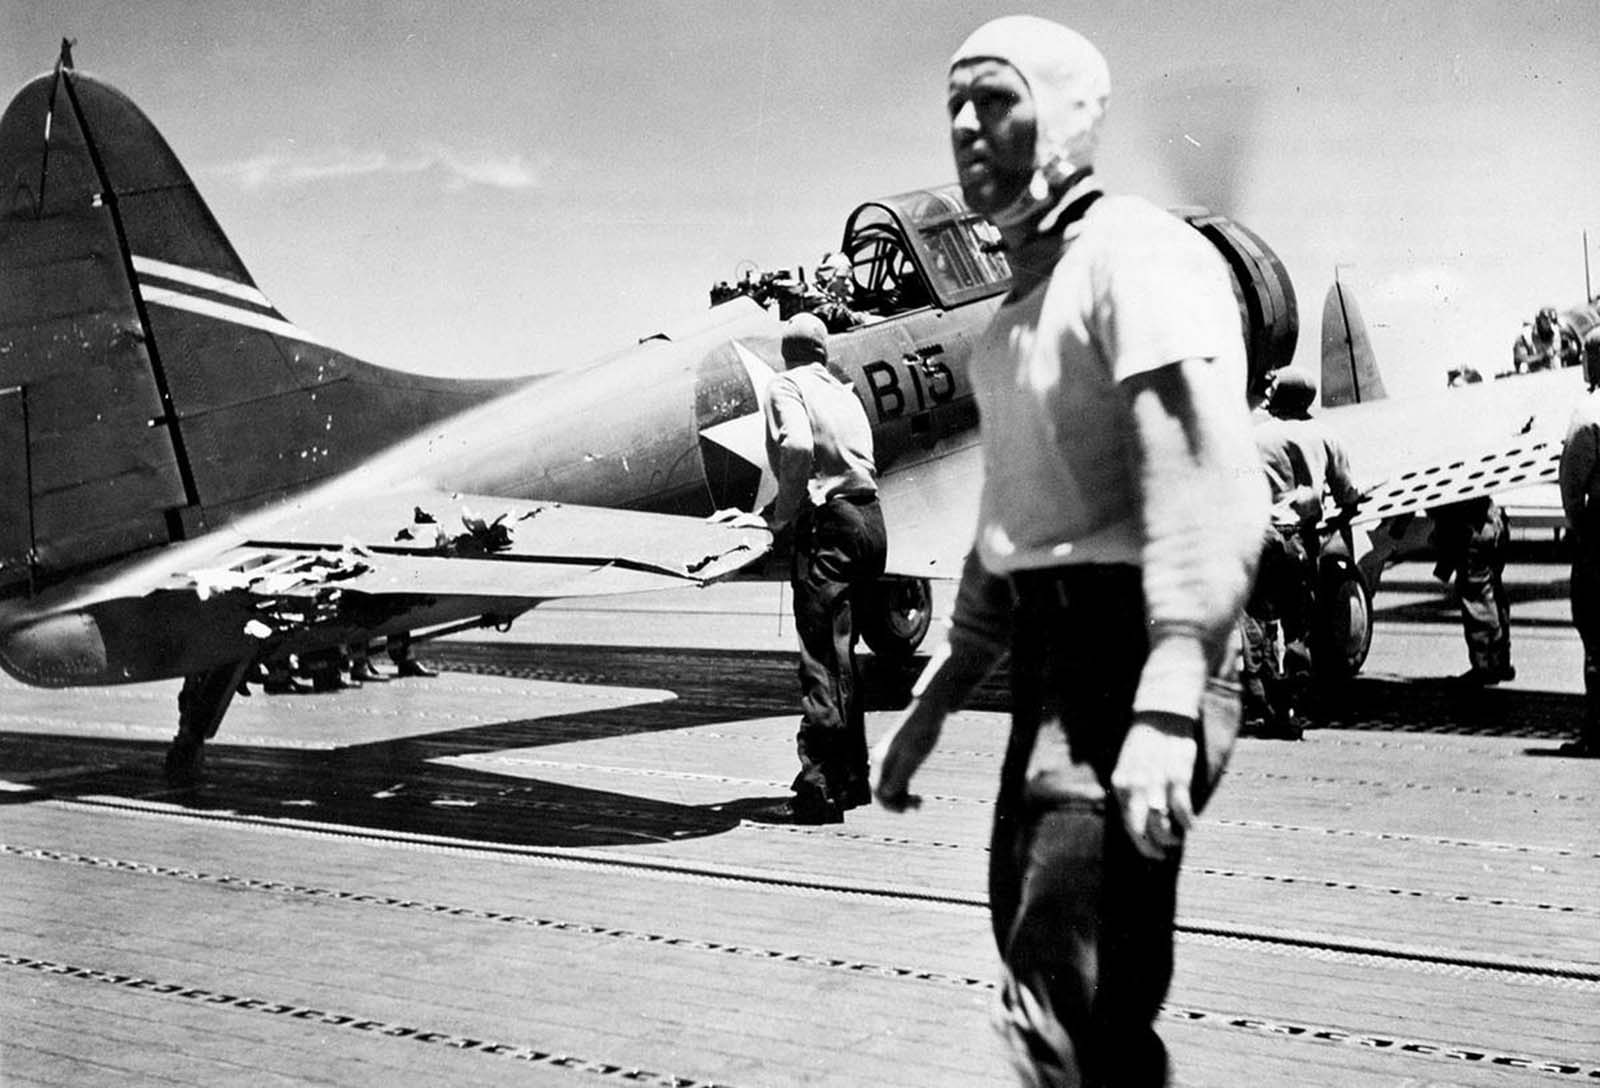 An SBD-3 dive bomber of Bombing Squadron Six, on the deck of USS Yorktown. The aircraft was flown by Ensign G.H. Goldsmith and ARM3c J. W. Patterson, Jr., during the June 4, 1942 strike against the Japanese carrier Akagi. Note the battle damage on the tail.